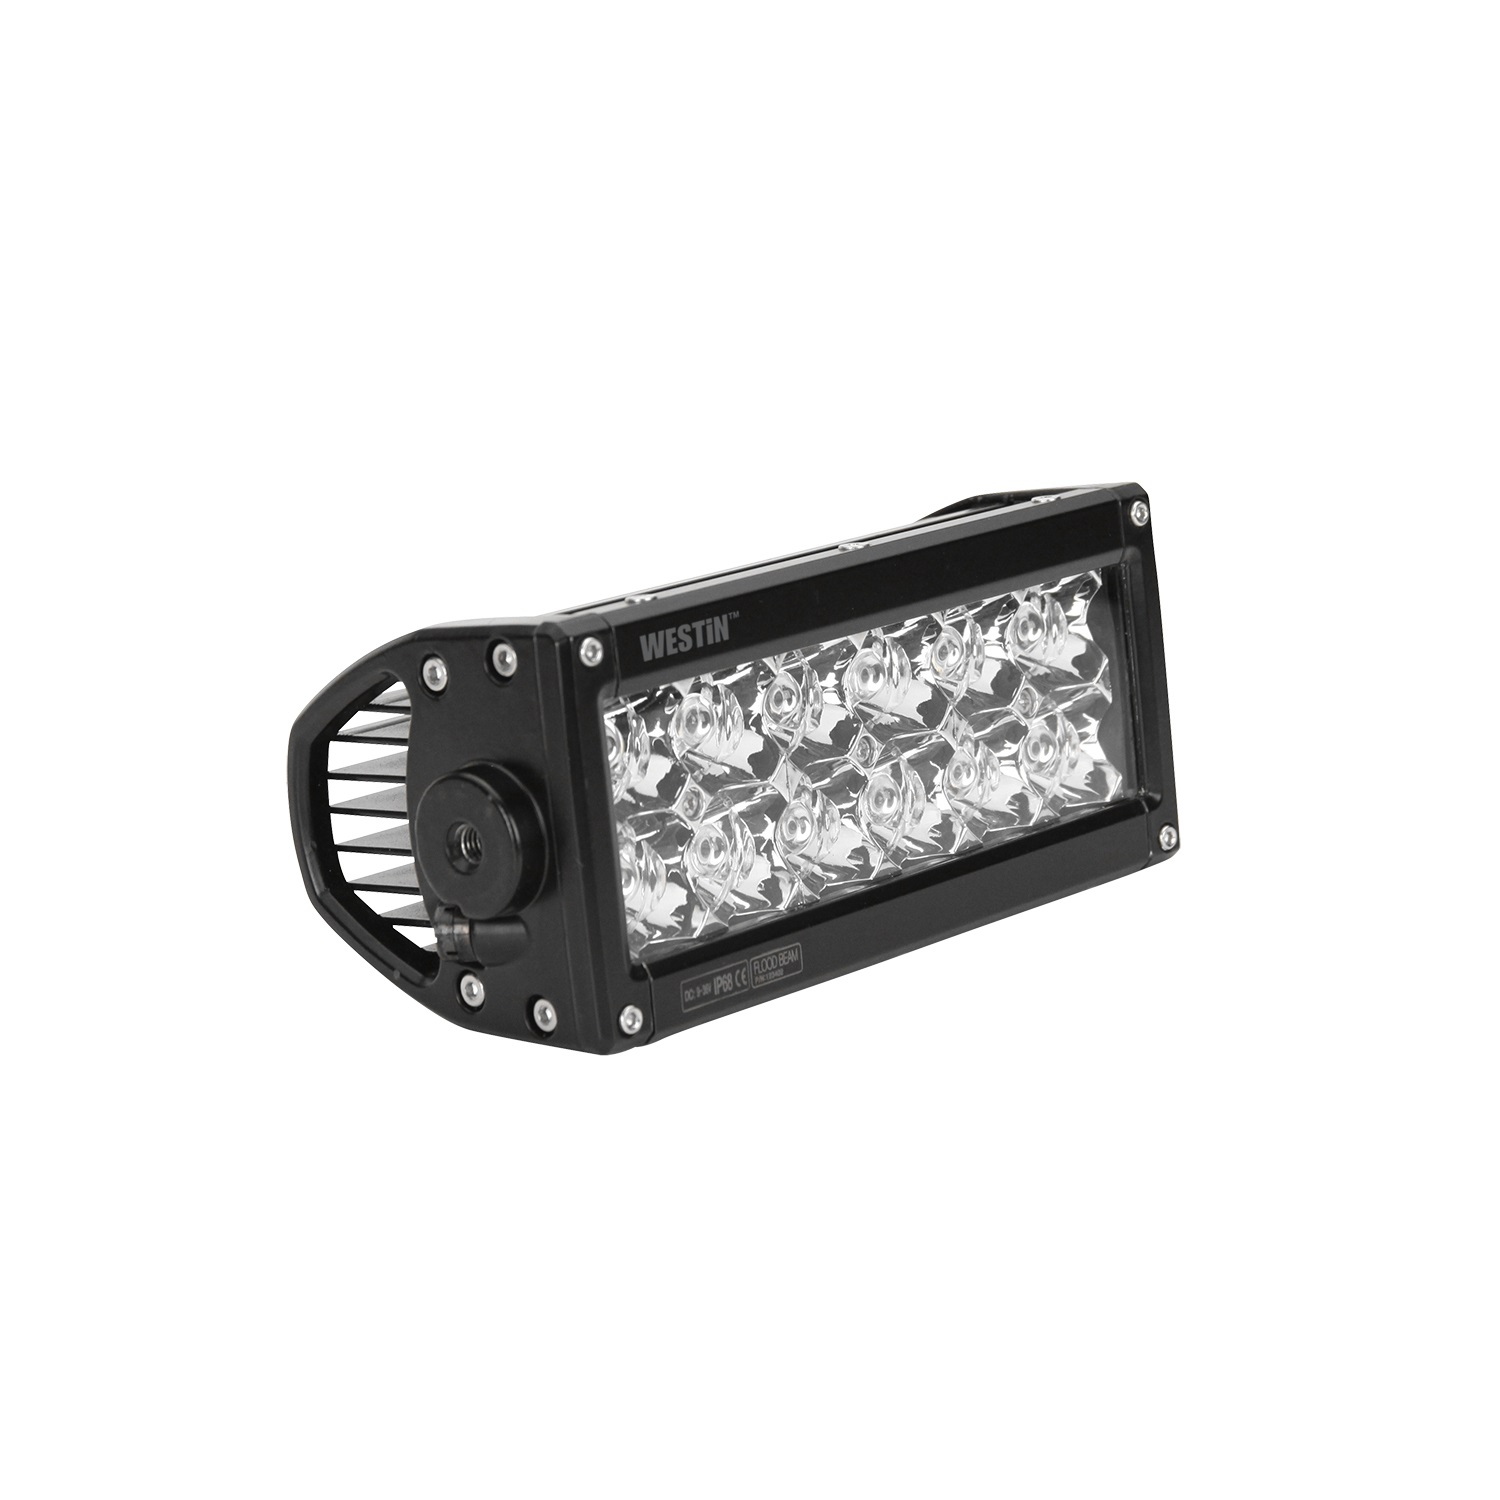 Westin 09-12230-12S Performance2X LED Light Bar